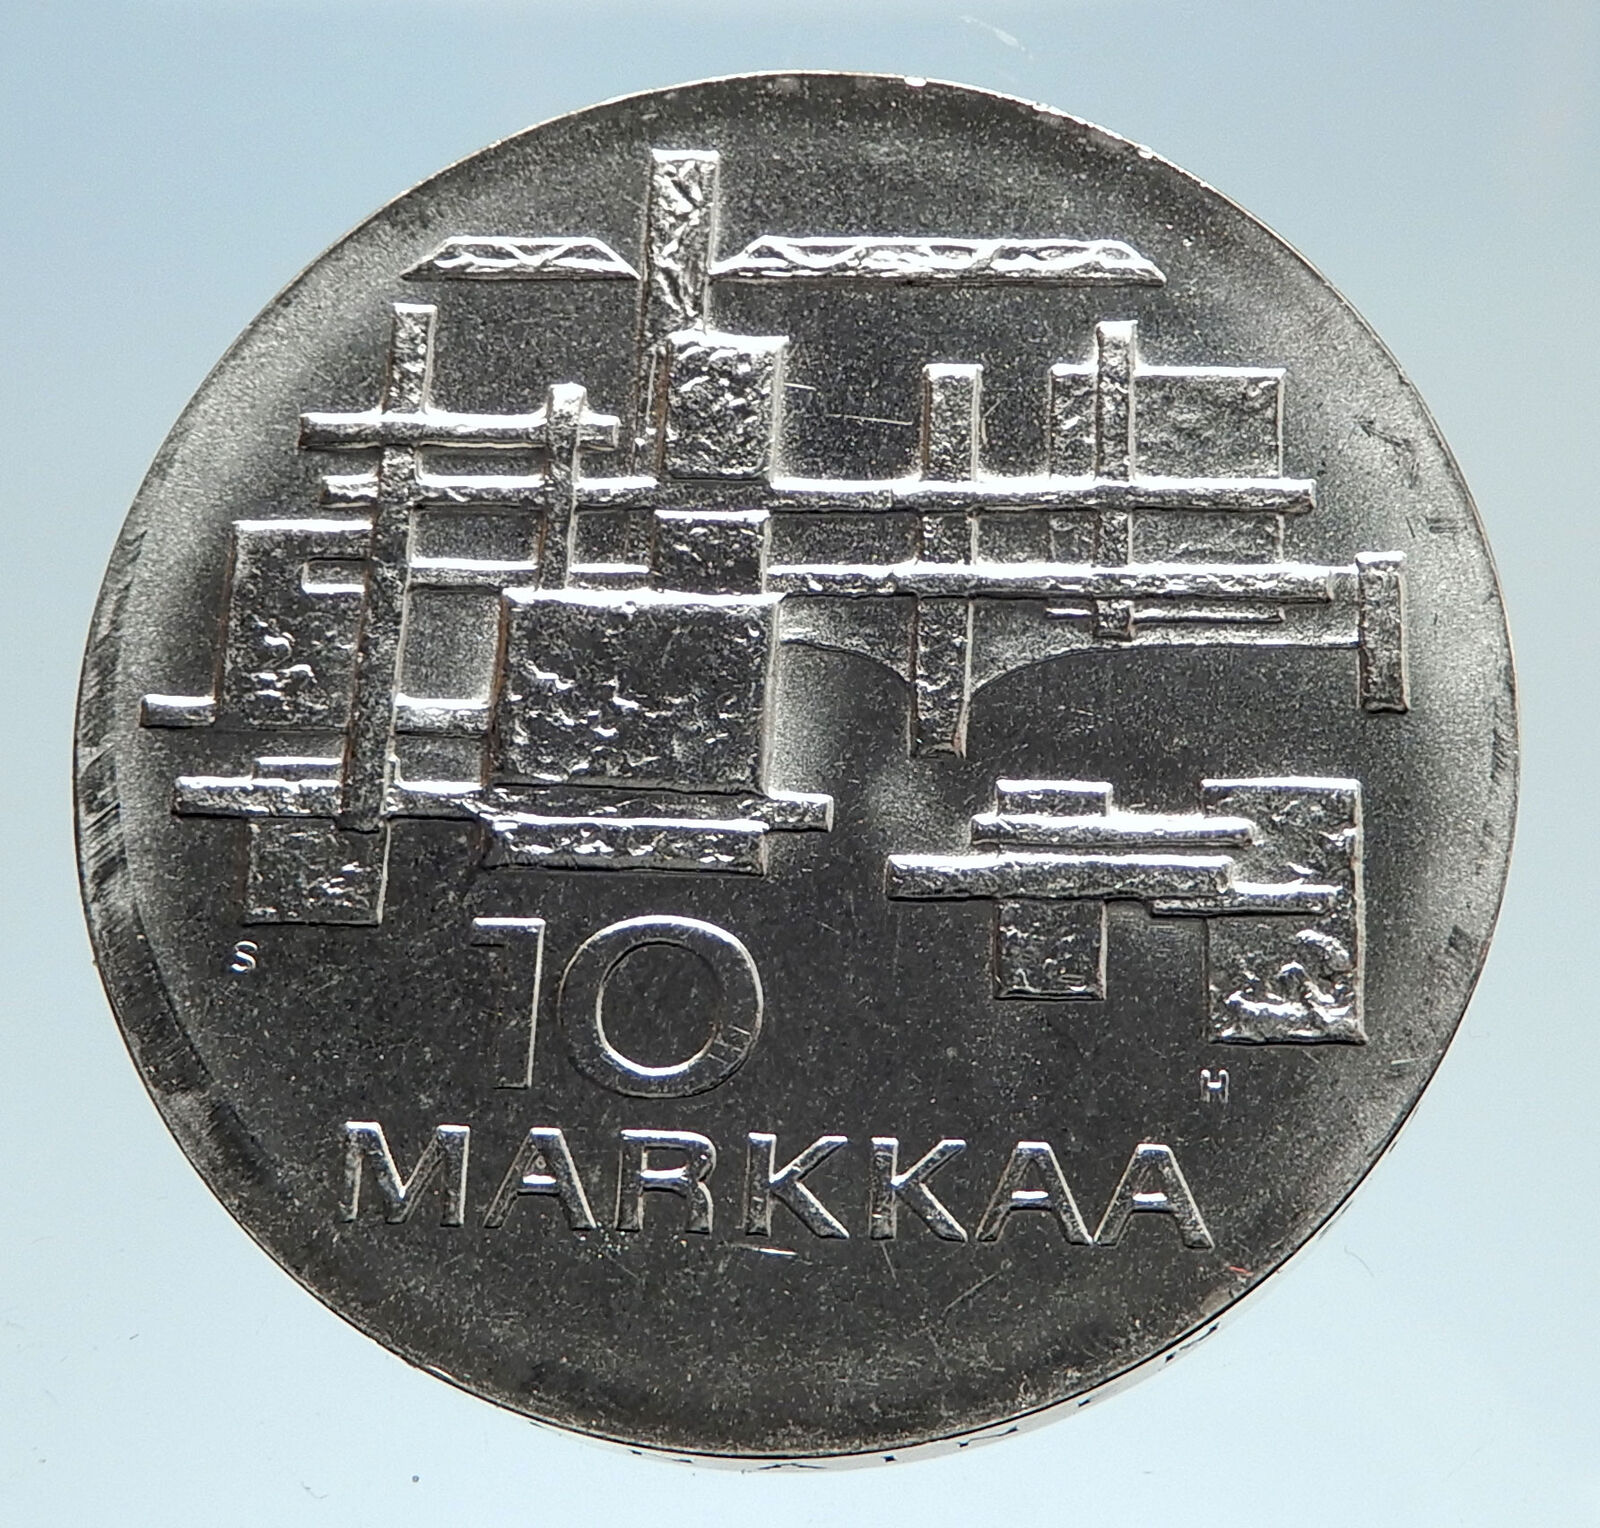 1967 FINLAND Geese Flying 50Y Independence Genuine Silver 10 Markkaa Coin i75150 2